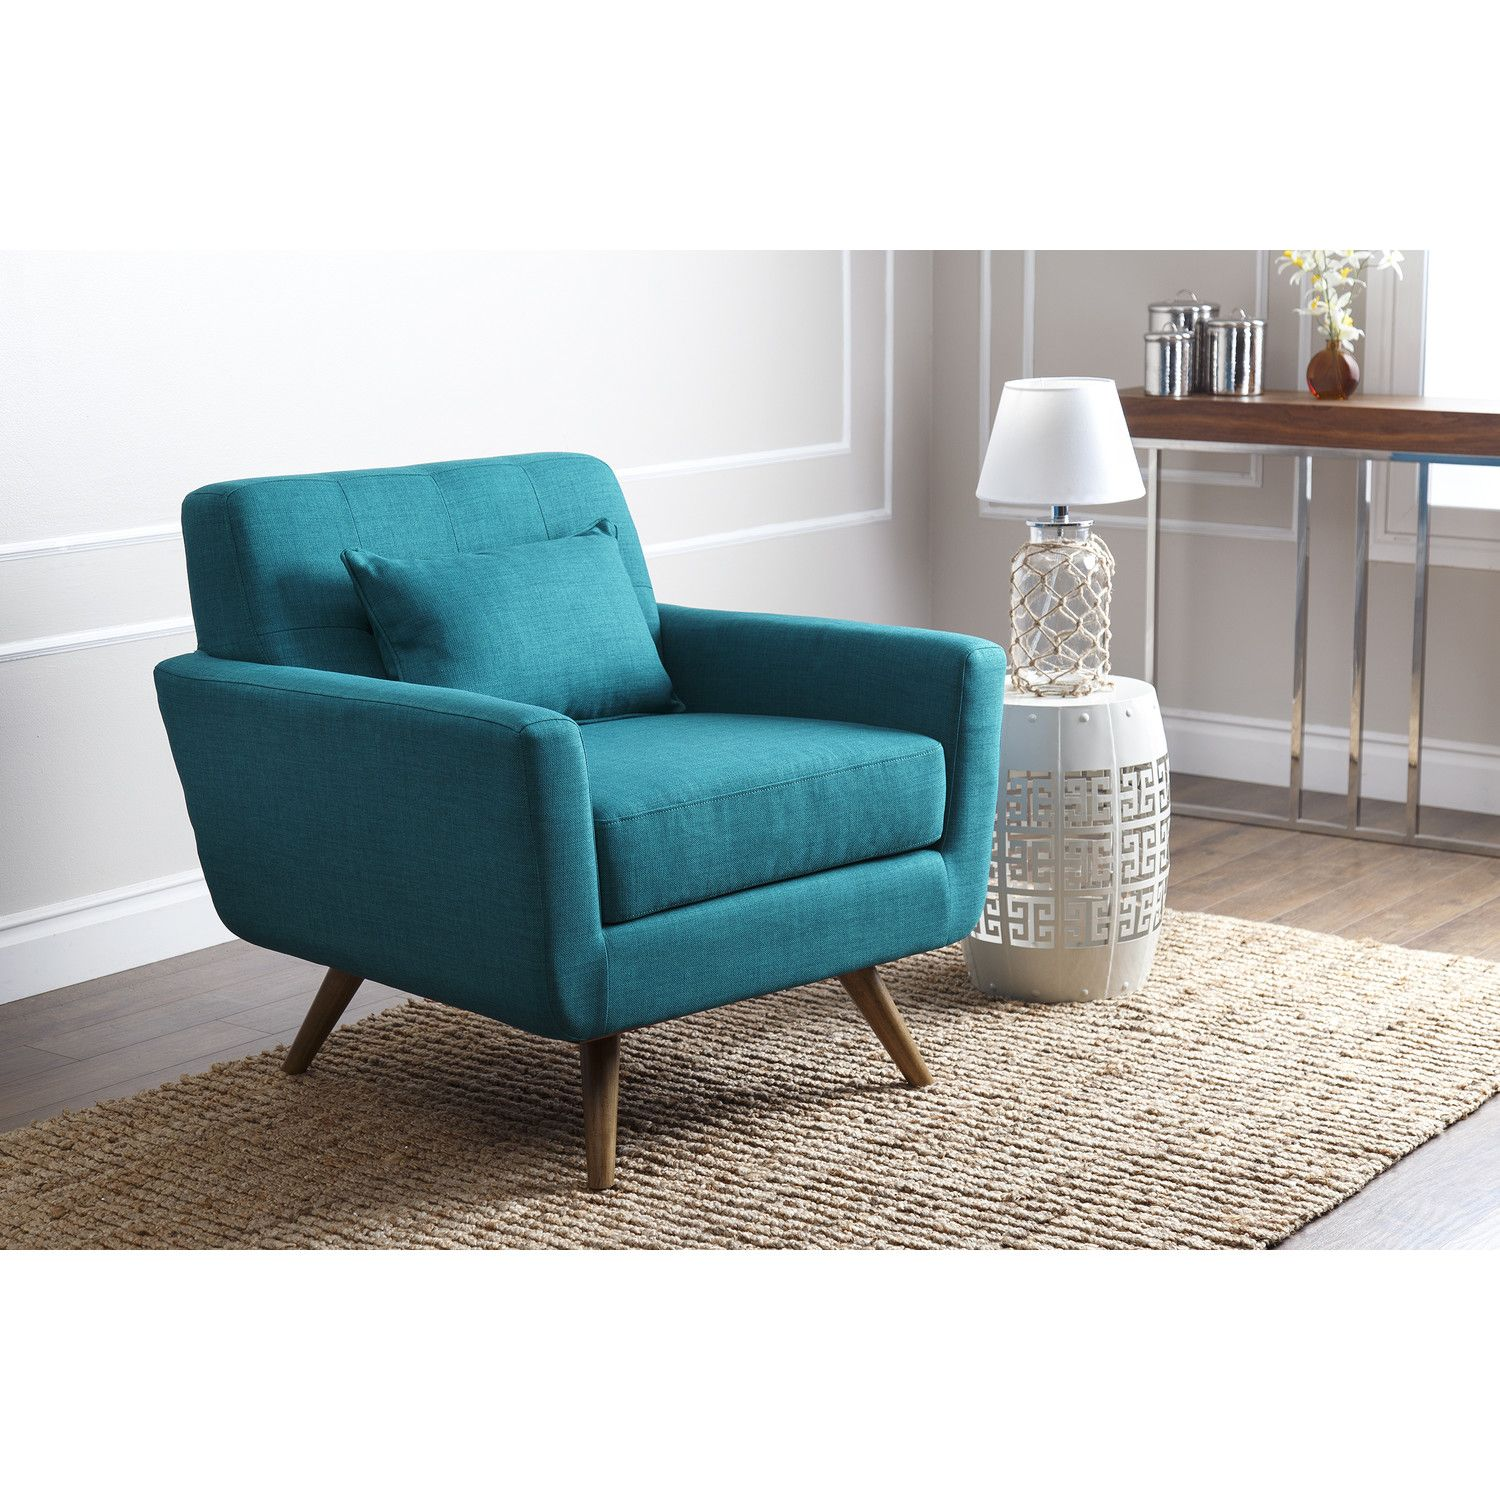 Abbyson Living Leyla Fabric Arm Chair For the Home